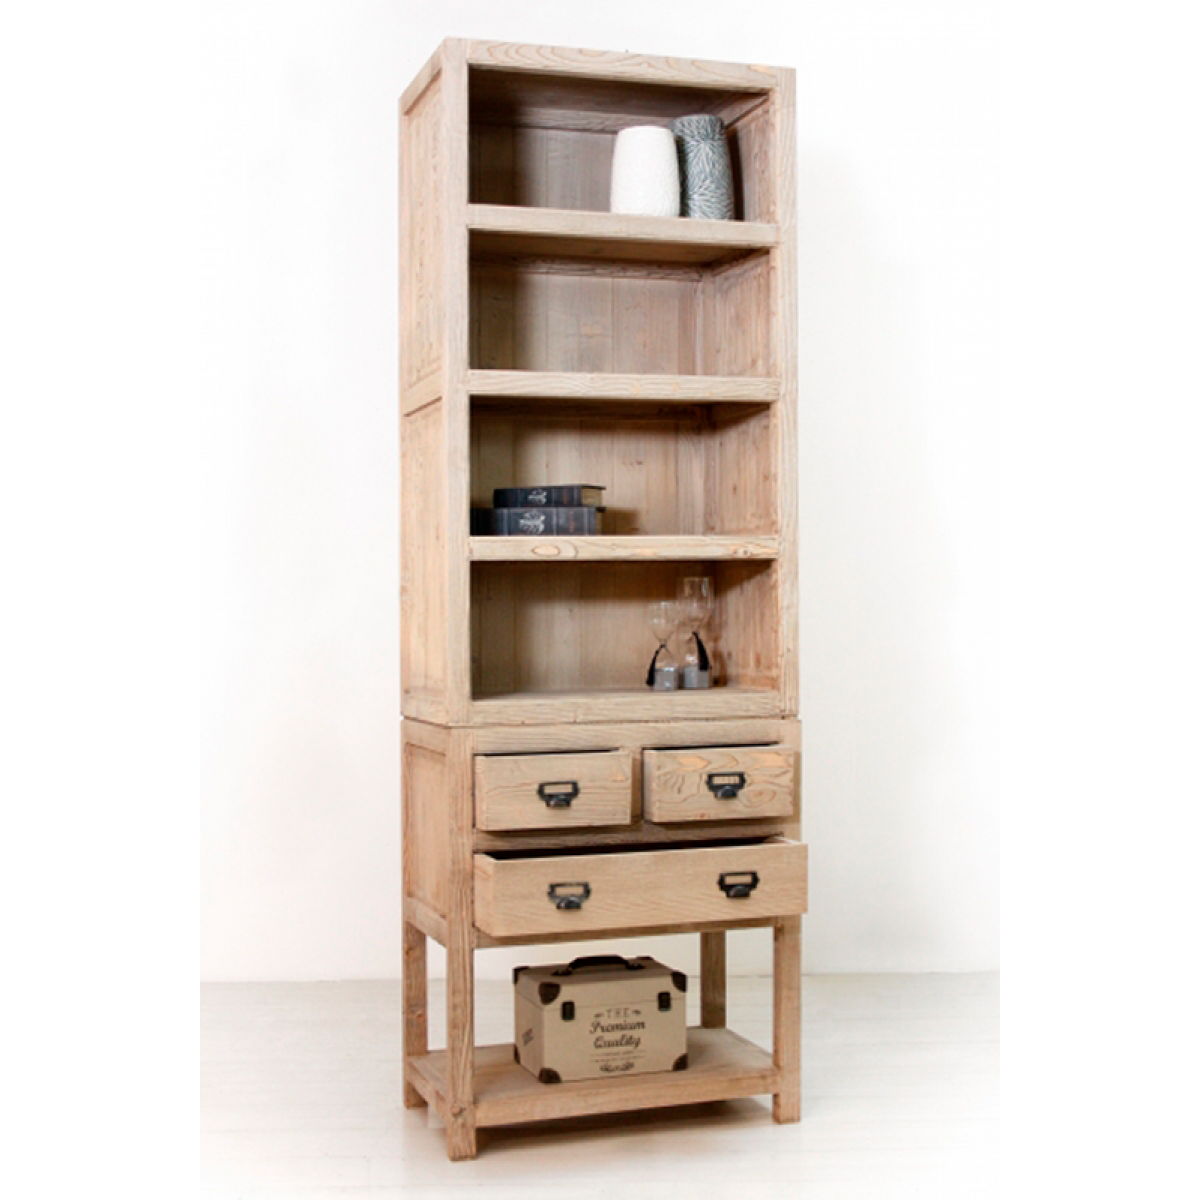 Libreria scaffale country in legno massello di abete naturale cm ...